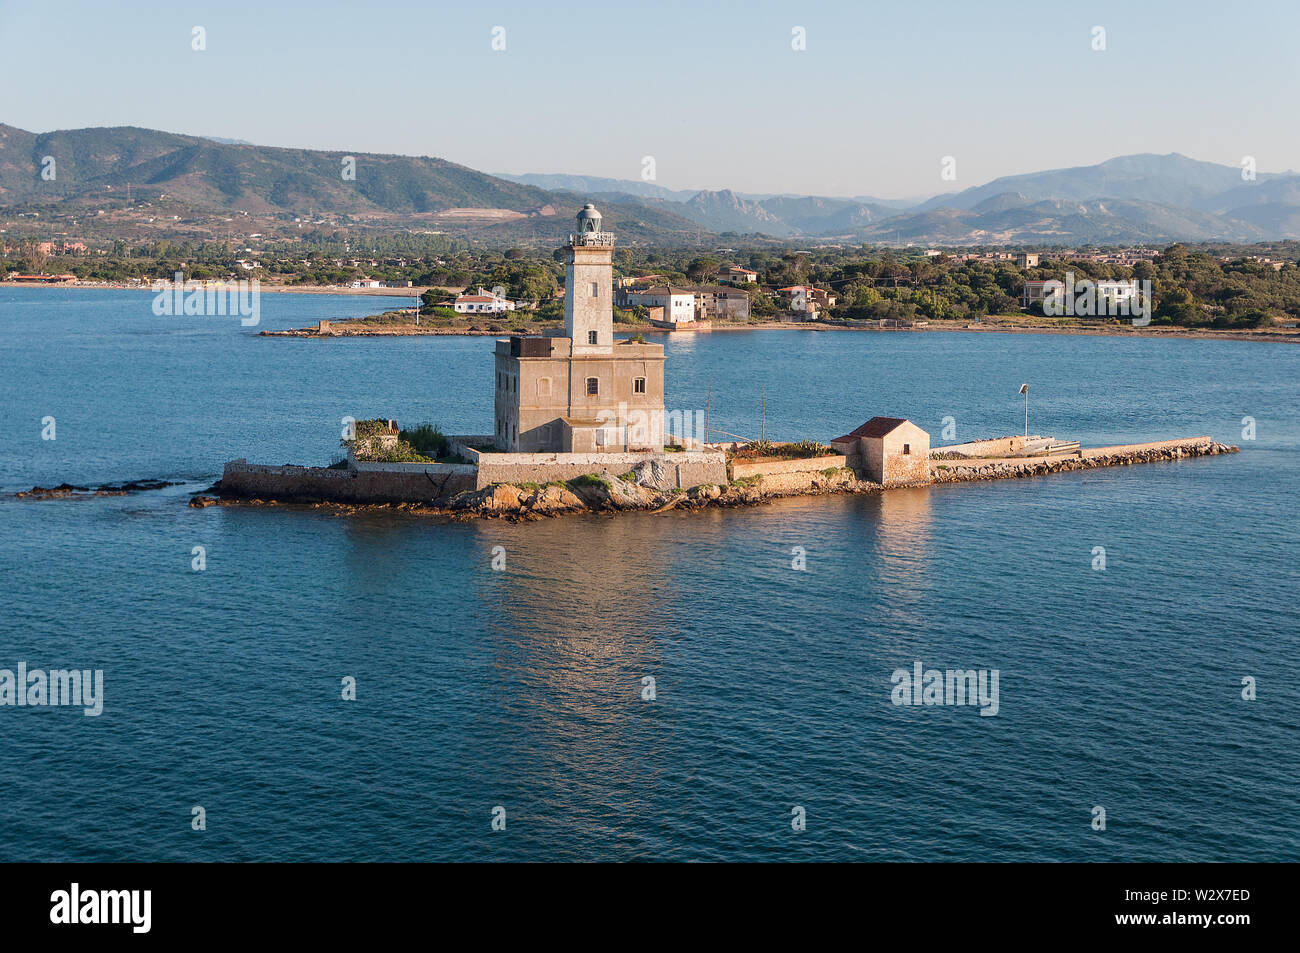 A view of lighthouse in Olbia gulf on sunset hour Stock Photo